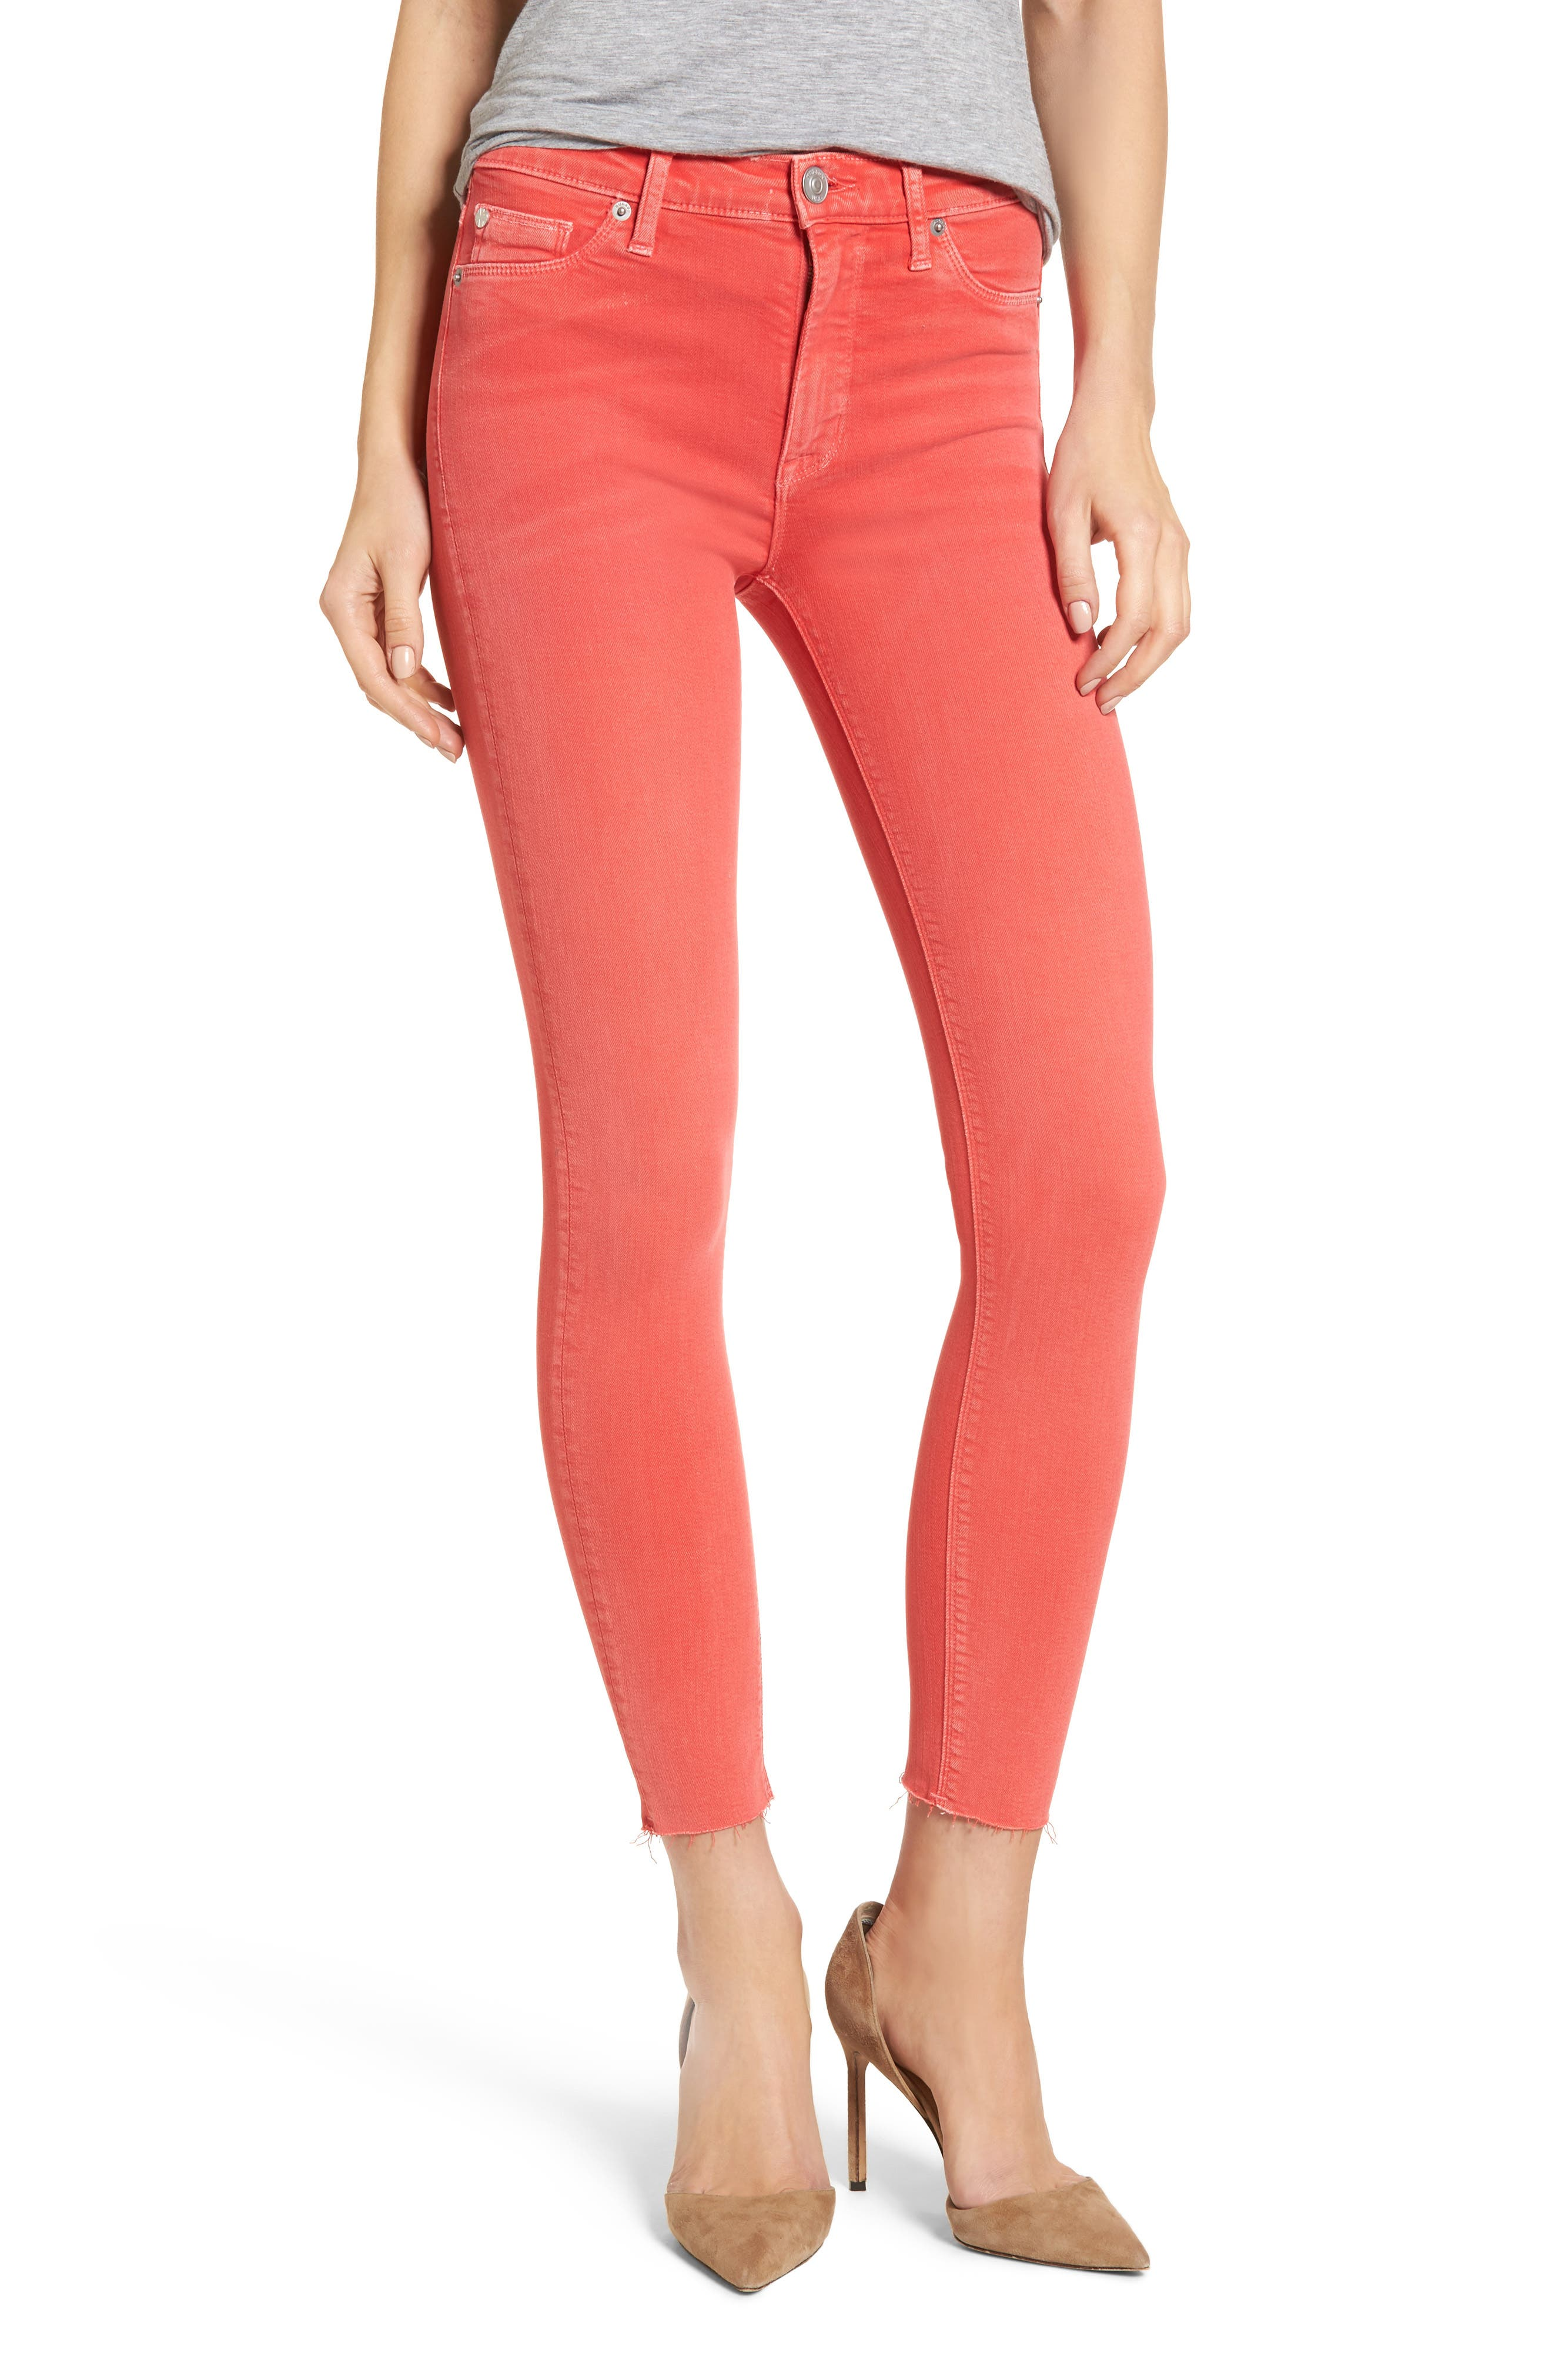 HUDSON JEANS,                             Tally Crop Skinny Jeans,                             Main thumbnail 1, color,                             640